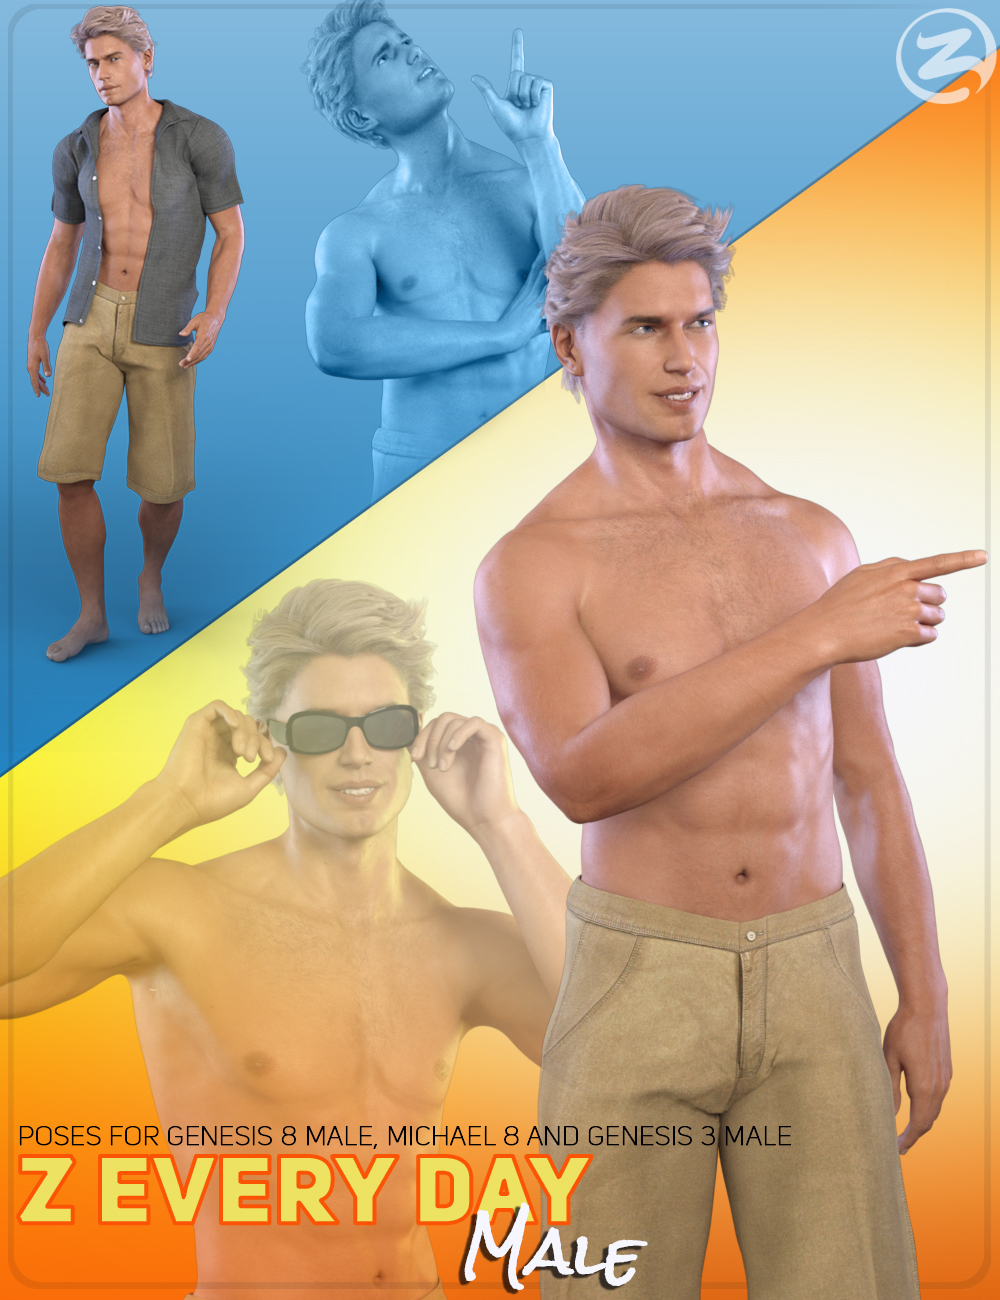 Z Everyday Male - Poses for Genesis 3 Male, Genesis 8 Male and Michael 8 by: Zeddicuss, 3D Models by Daz 3D